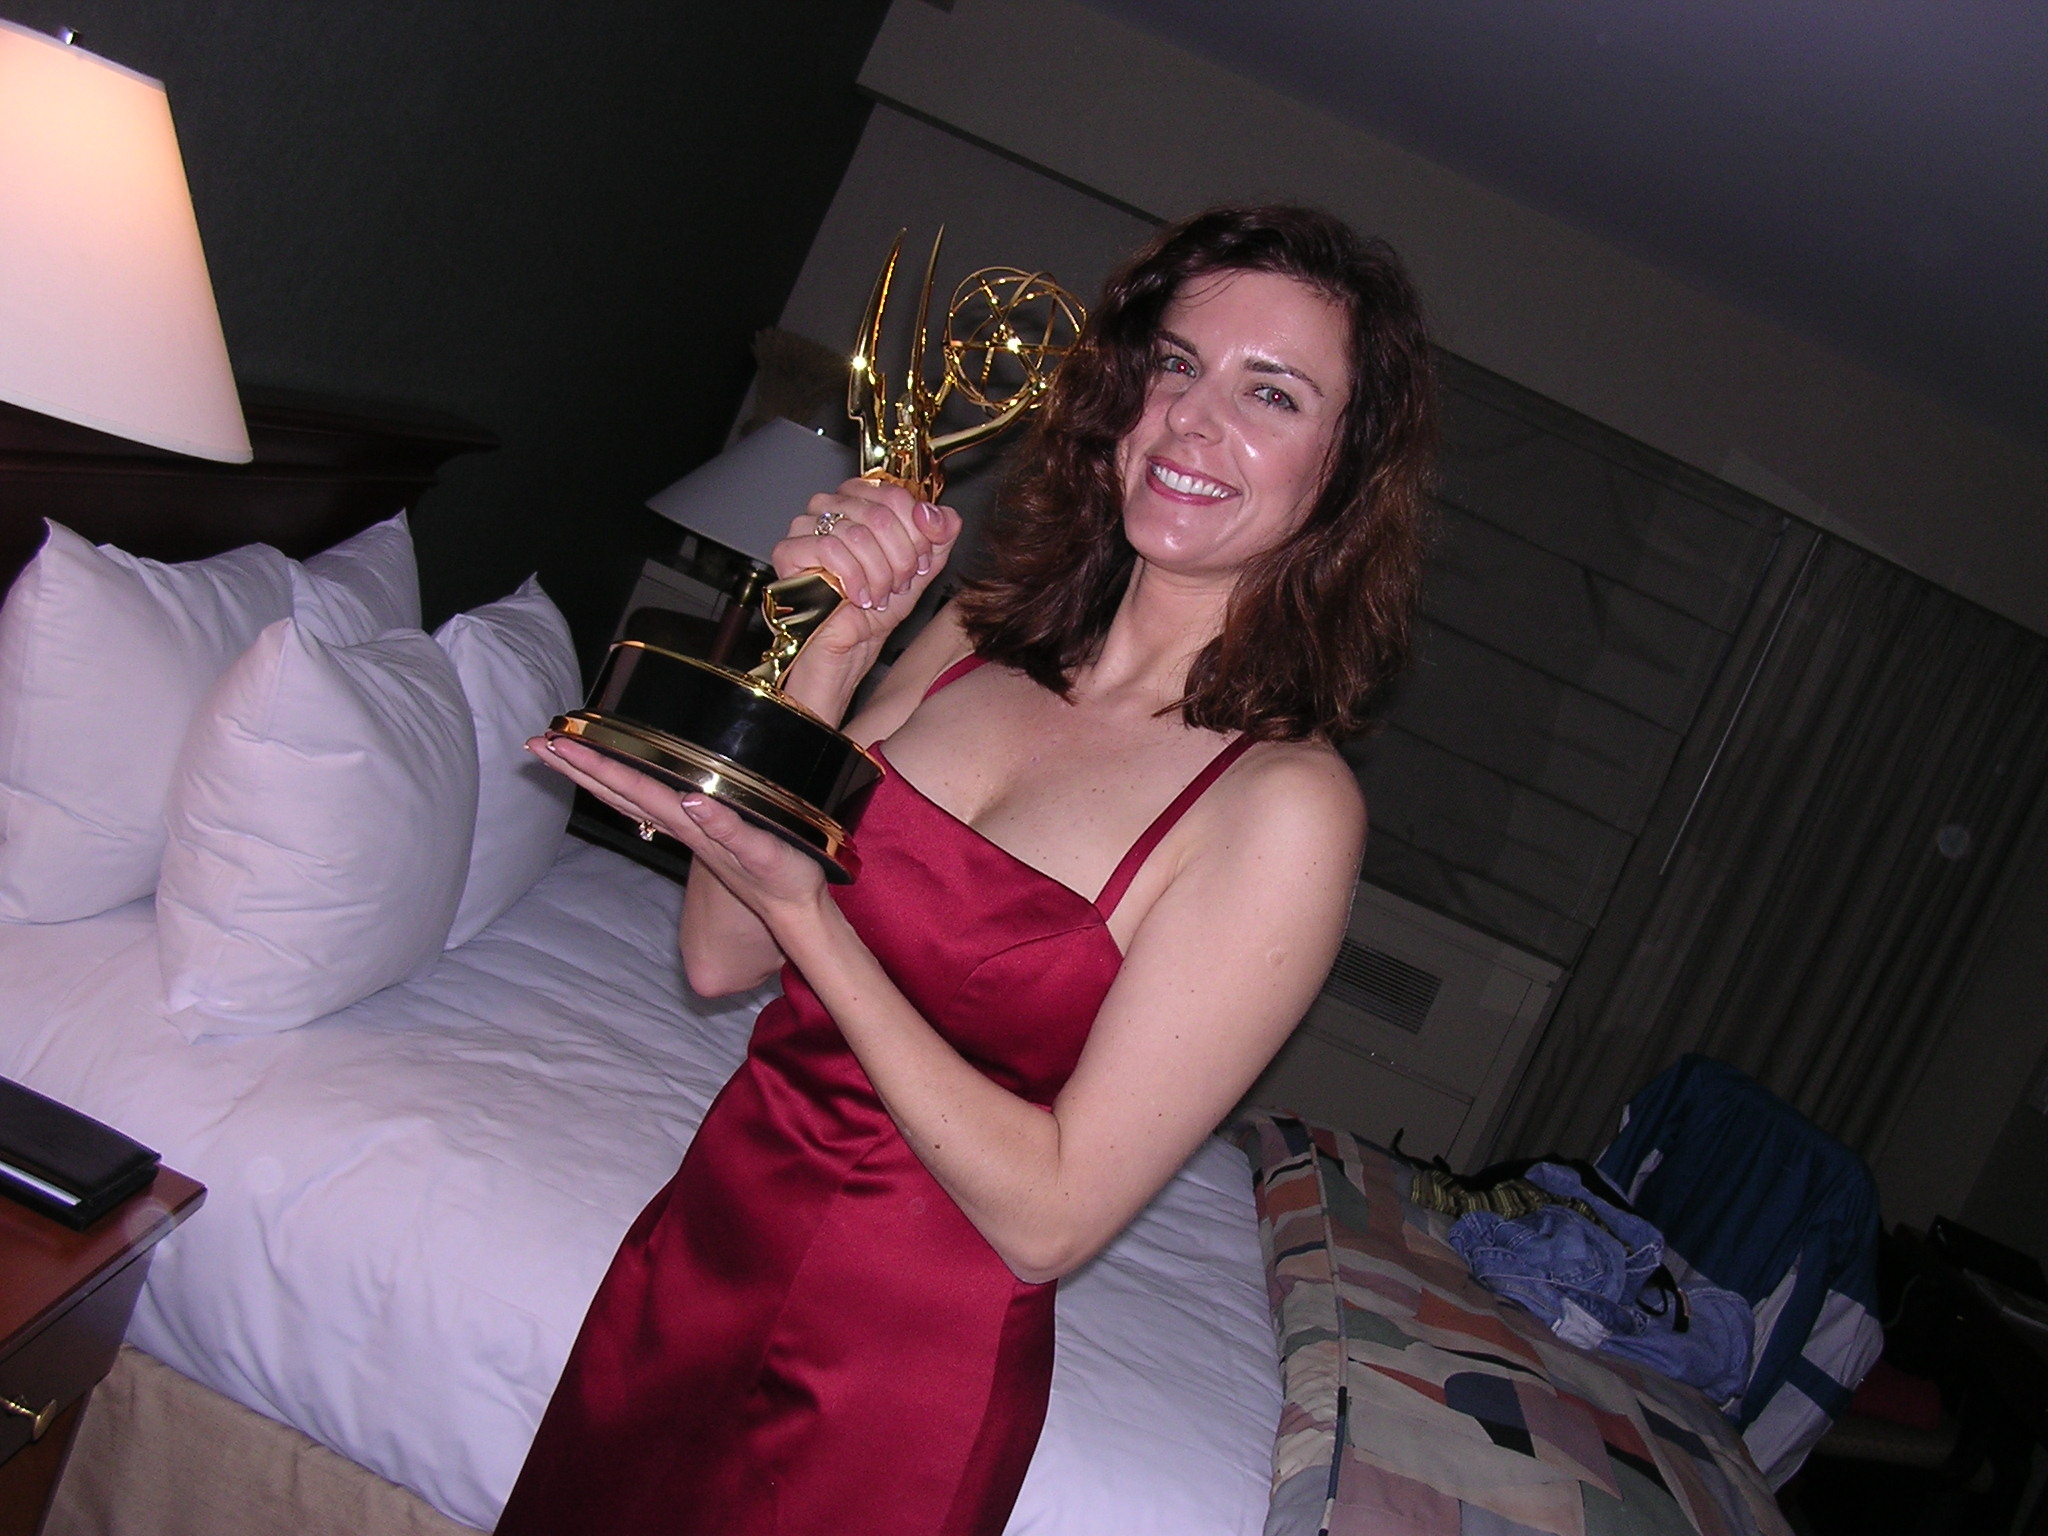 Upon returning with Emmy to The Muse (our hotel), Mary had a great idea of taking Emmy on a walk of victory around Times Square. So we changed out of our formal attire and into our victory clothes and spent the next couple of hours sharing Emmy with her fans.